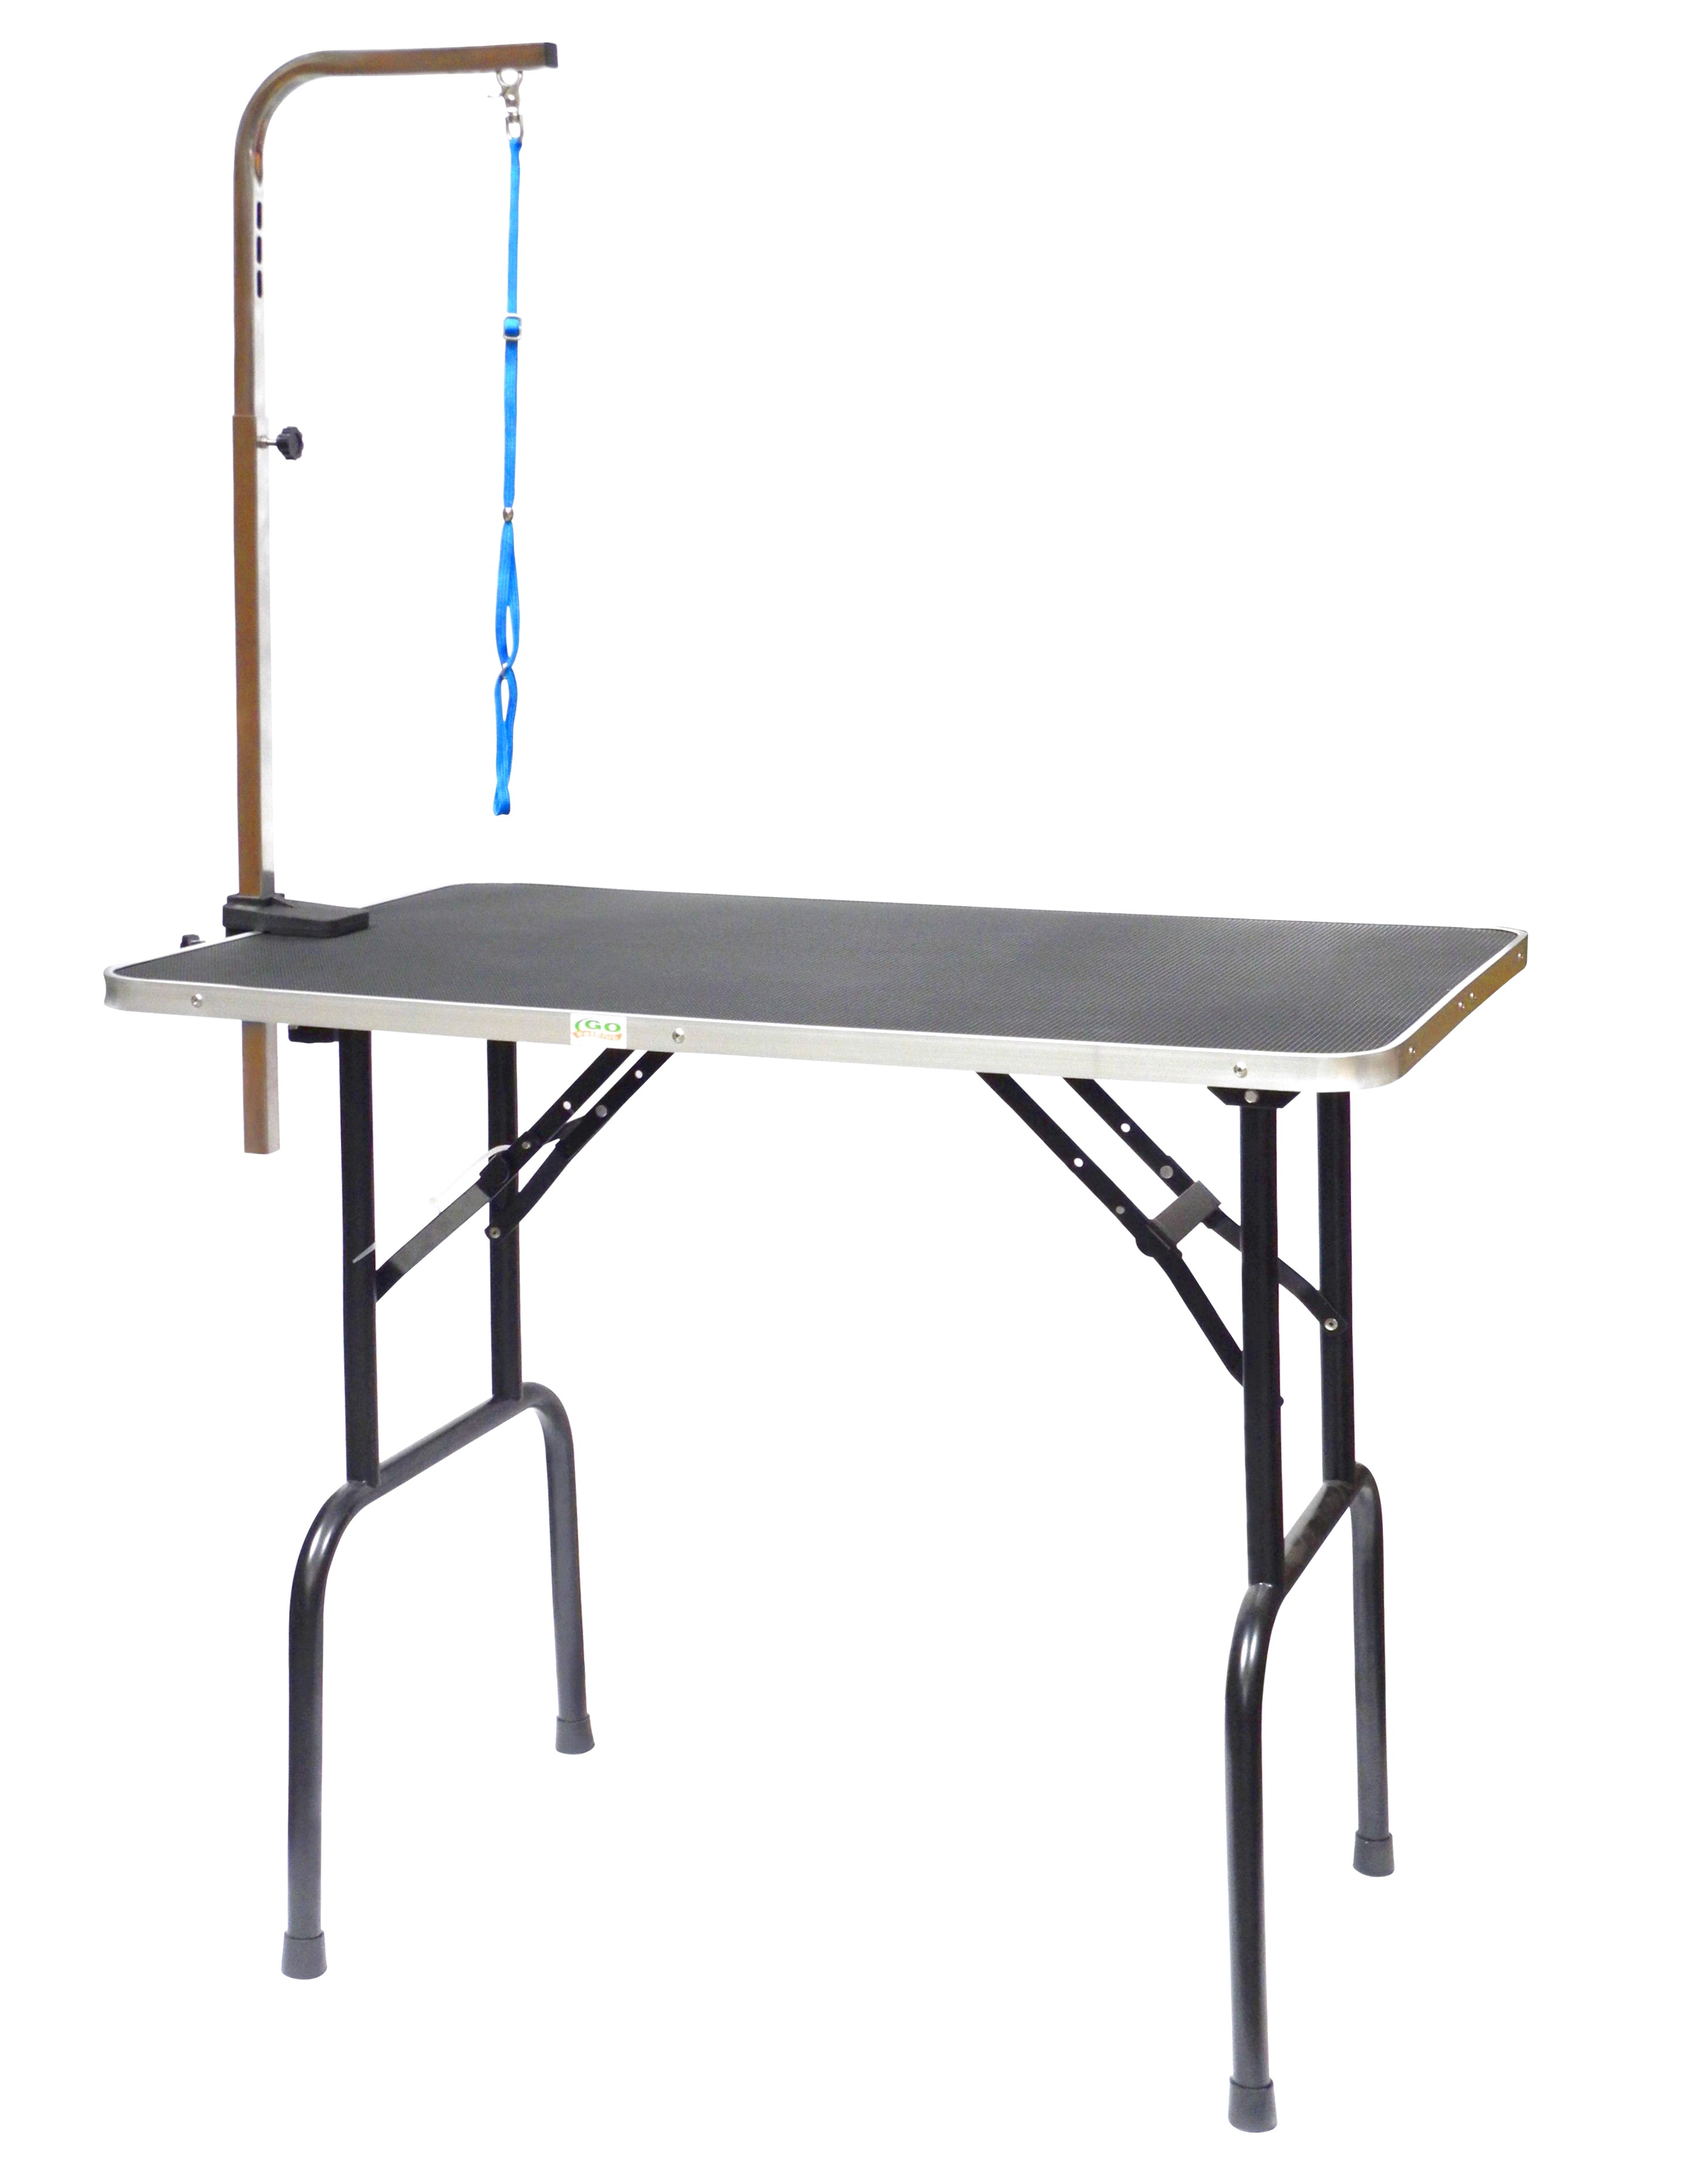 home grooming table for dogs